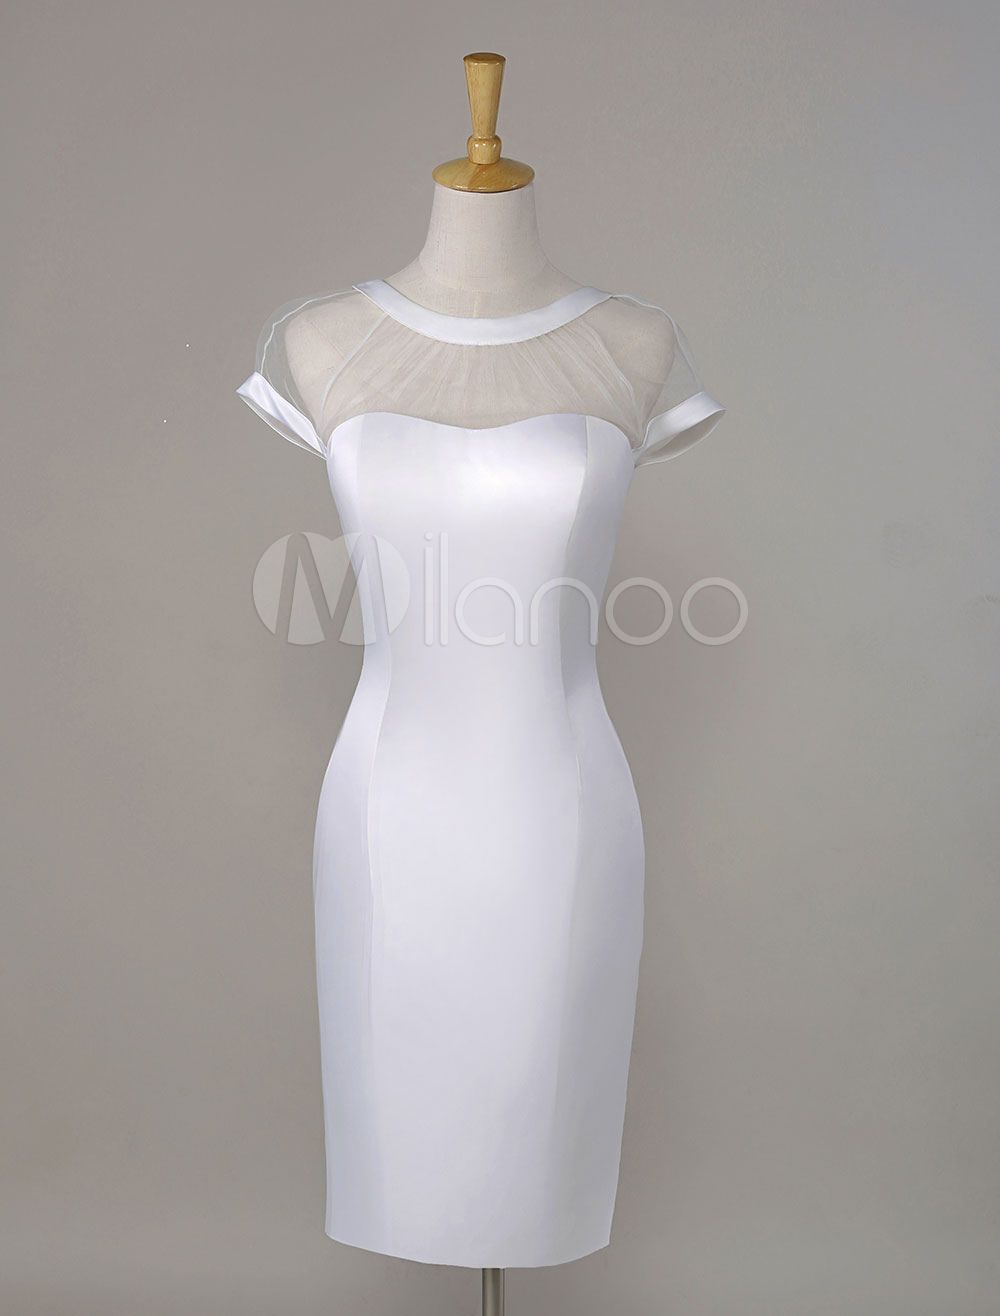 Short Sleeves Illusion V-Back Satin Cocktail Dress Wedding Guest Dress (Cheap Party Dress) photo